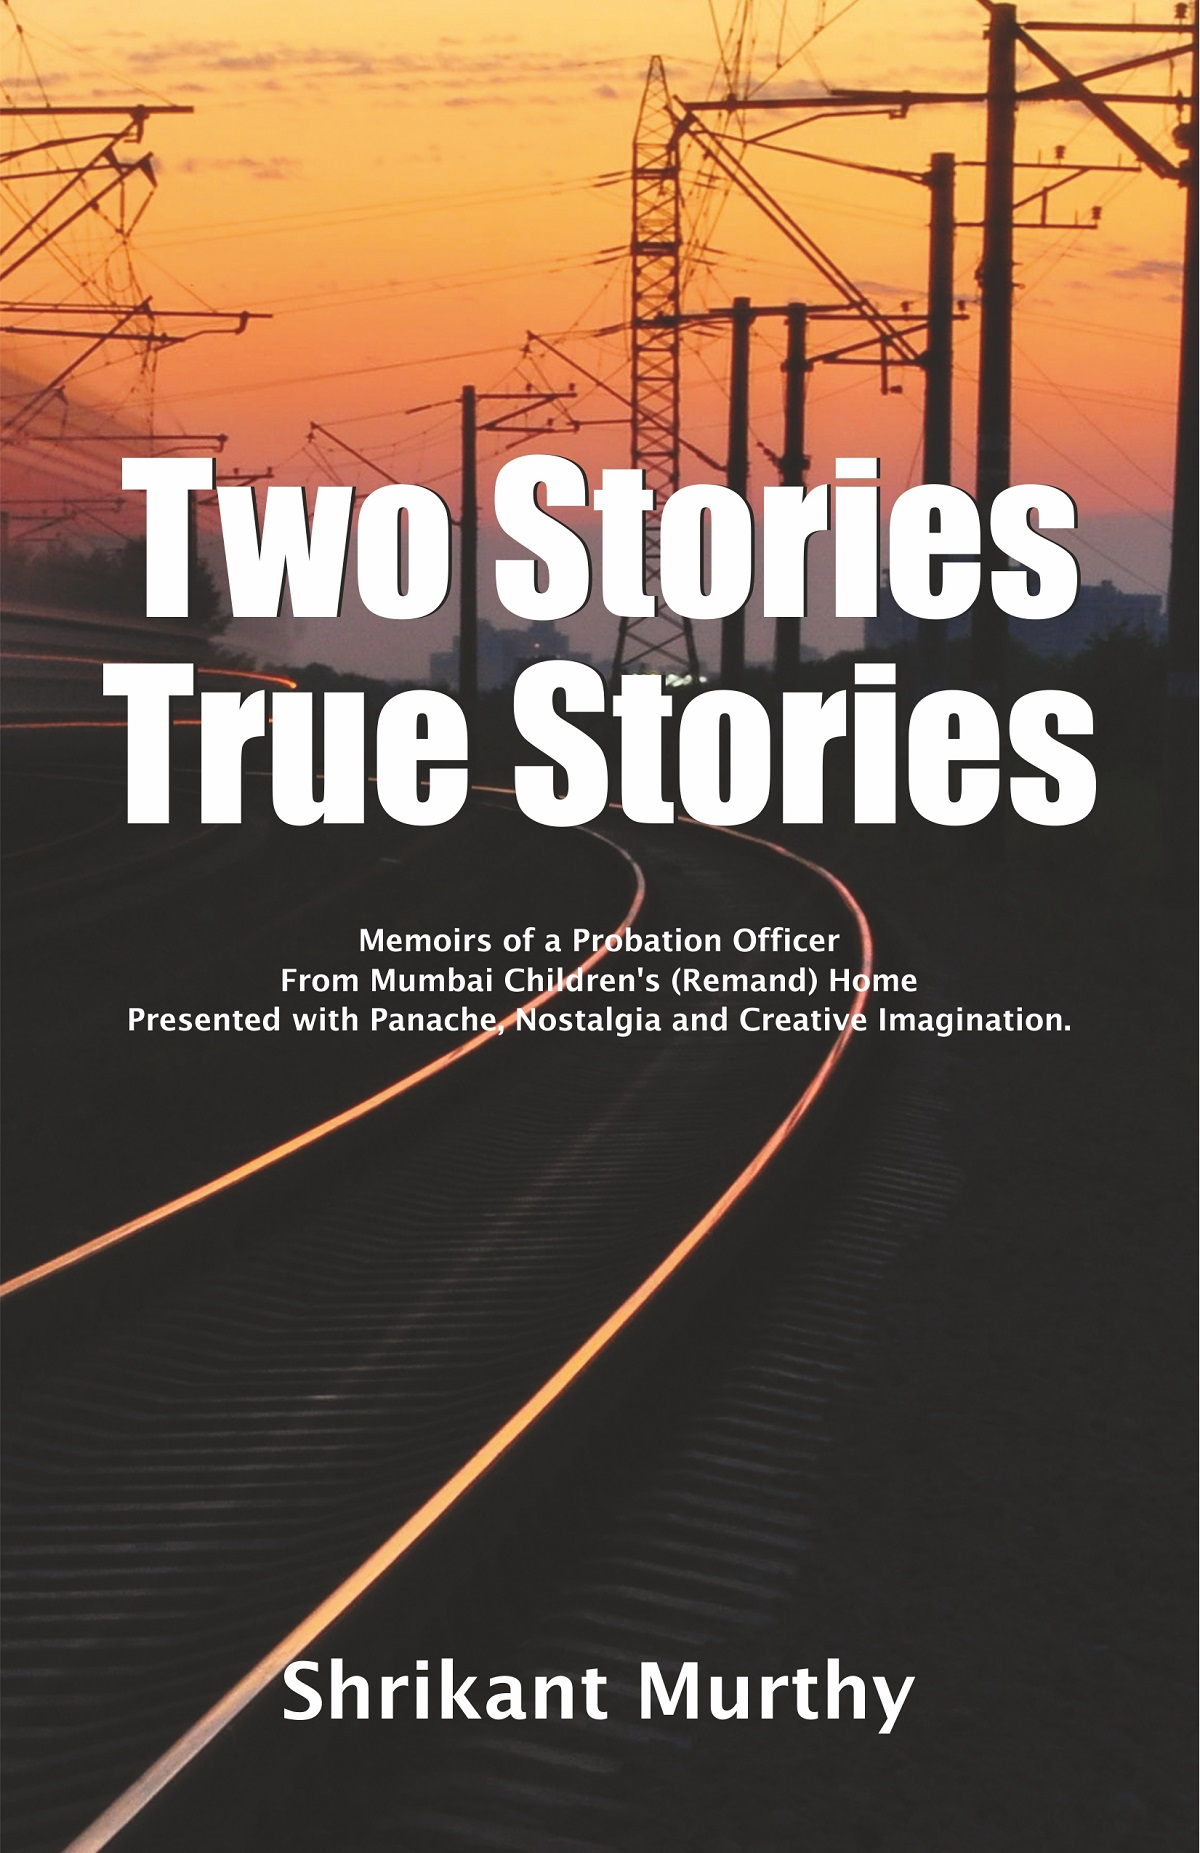 Two Stories True Stories